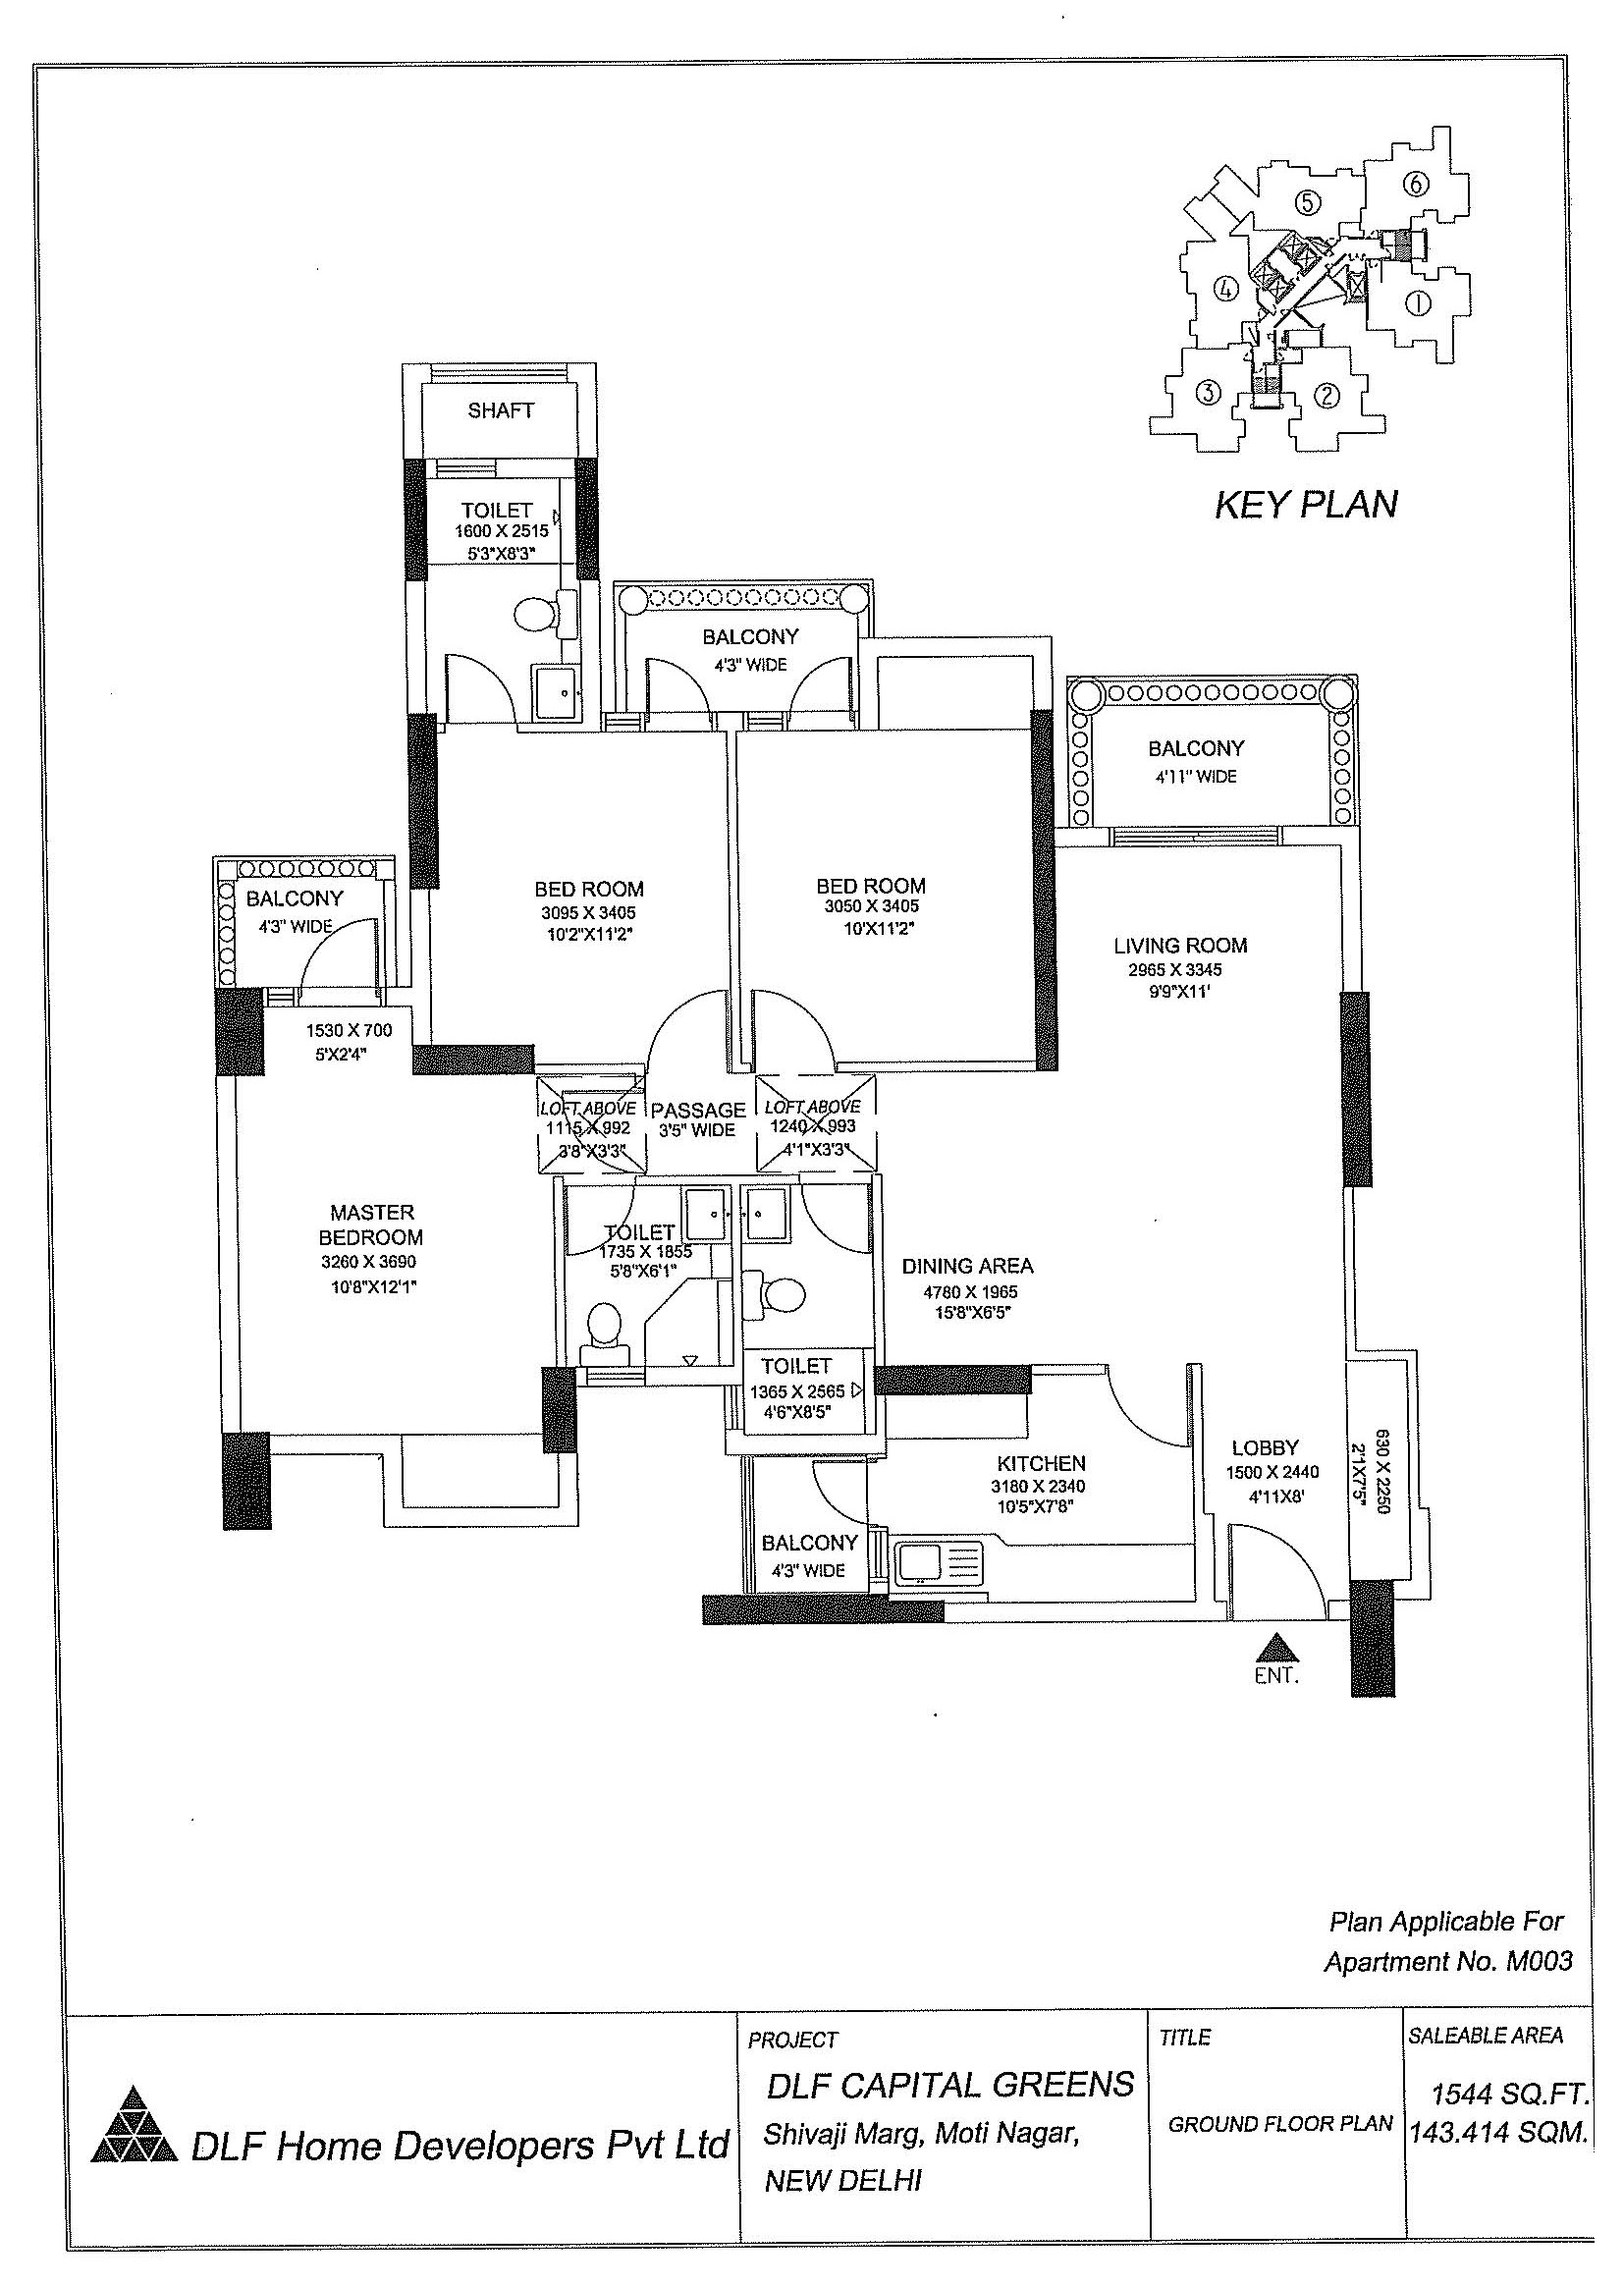 Area - 1544 Sq. Ft.